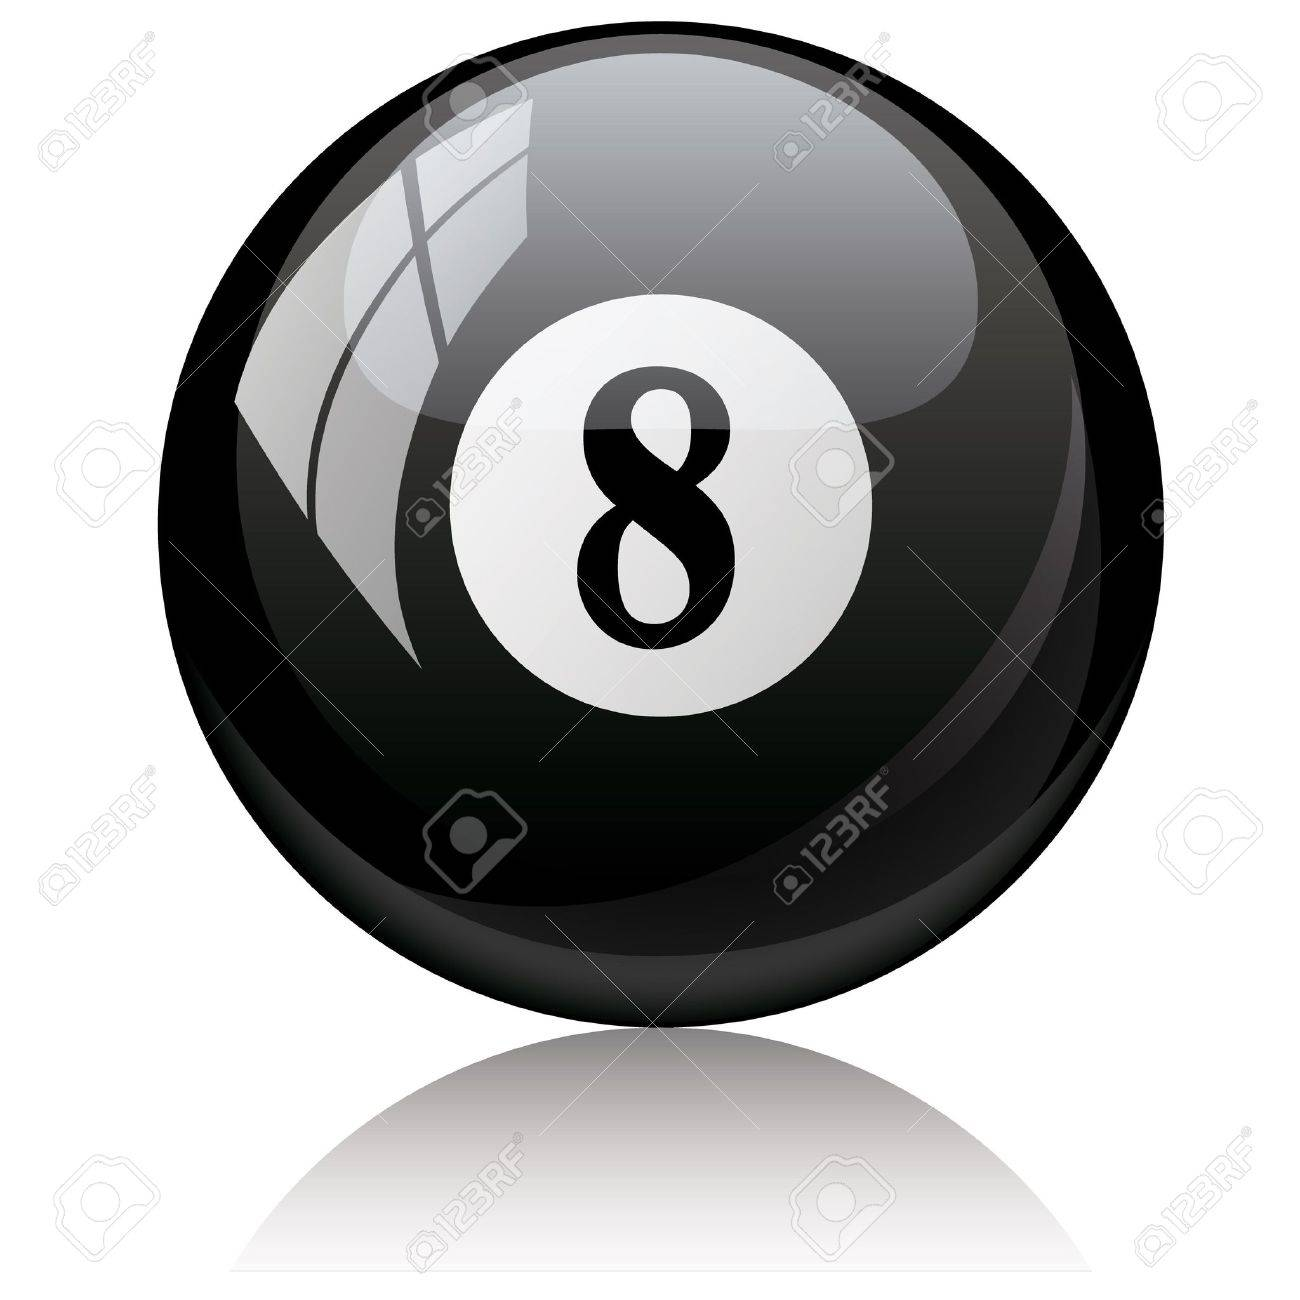 Vector illustration of a isolated glossy - eight, black - pool ball against white background. Stock Vector - 6905256